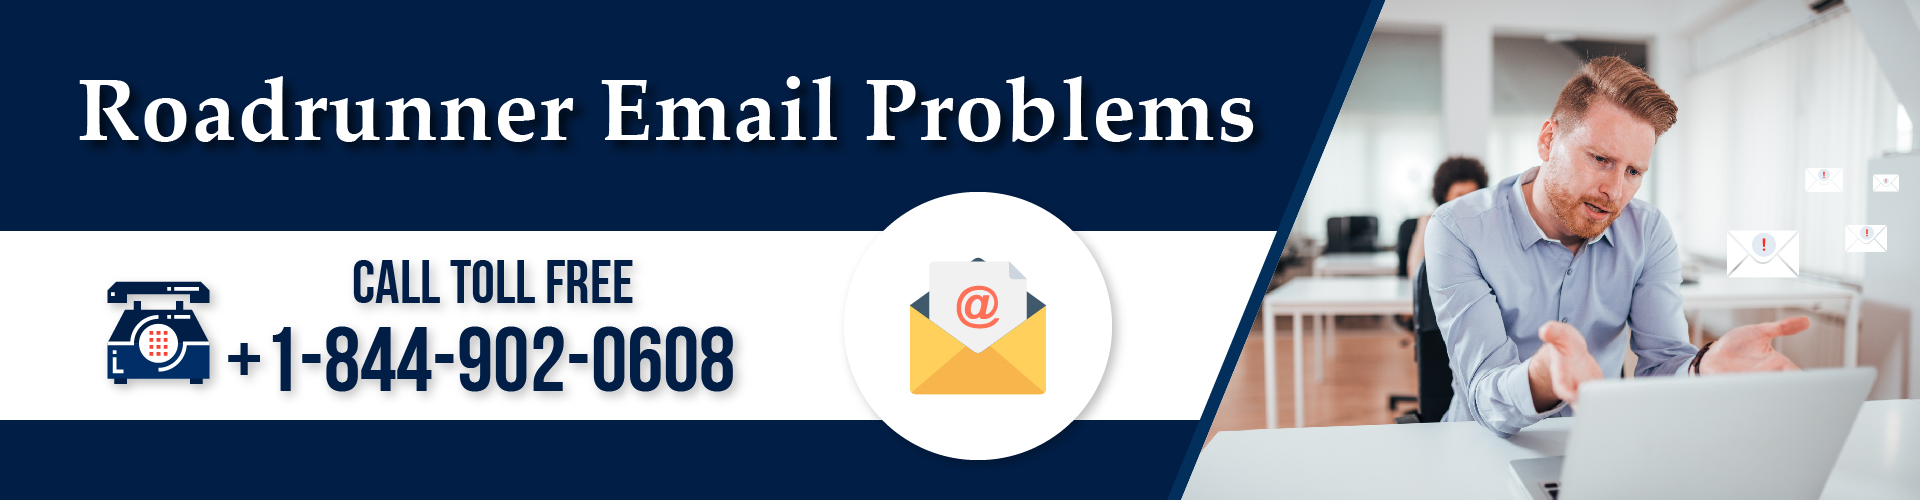 Fix Roadrunner Email Problems   Call For Help +1-844-902-0608